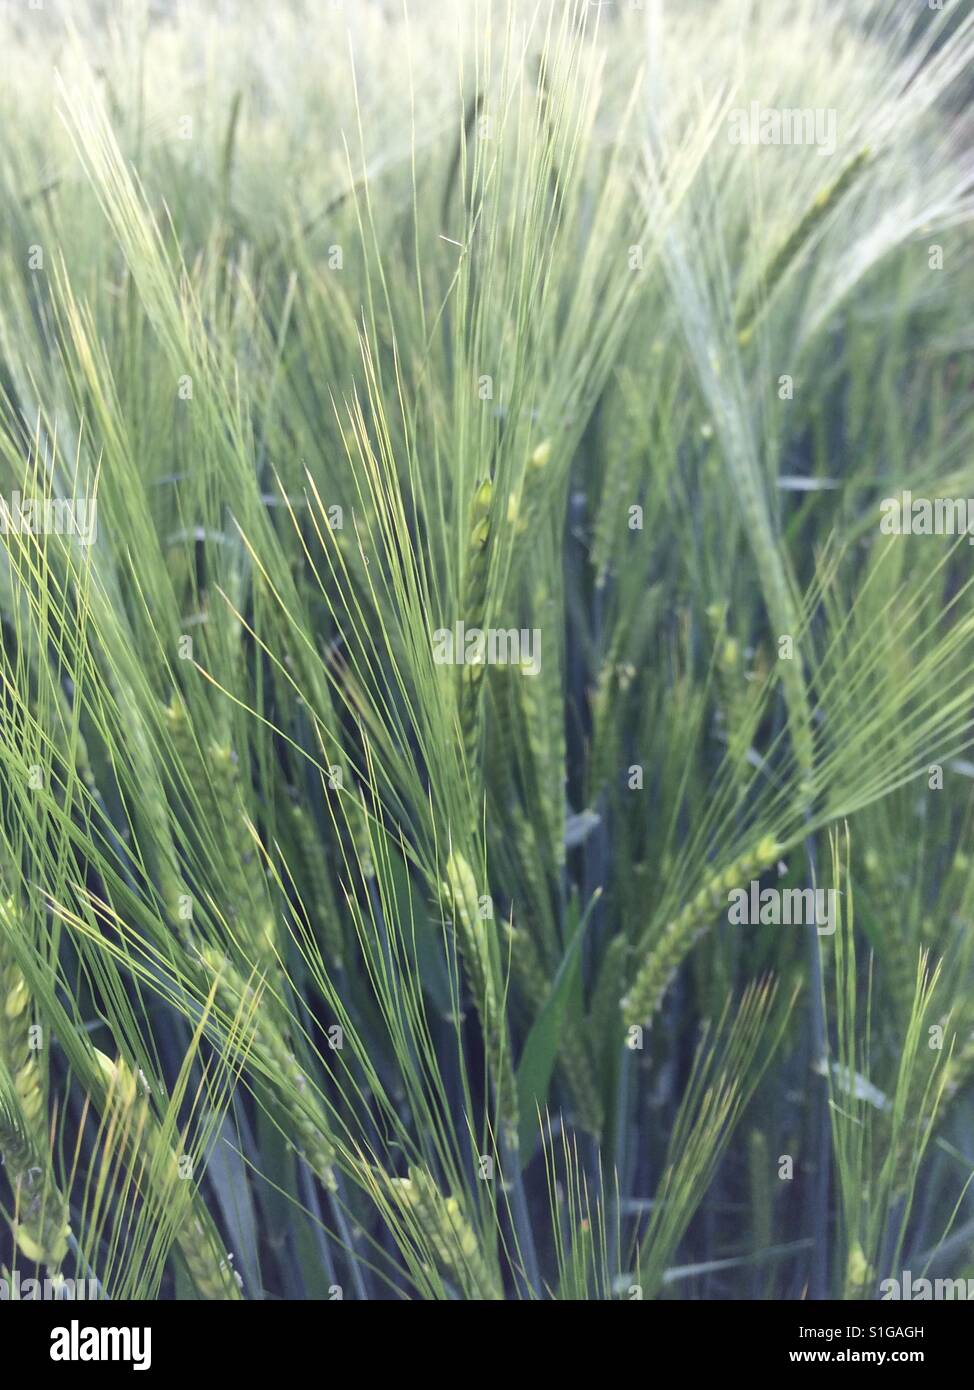 Barley field in Warwickshire English Countryside in May 2017 - Stock Image